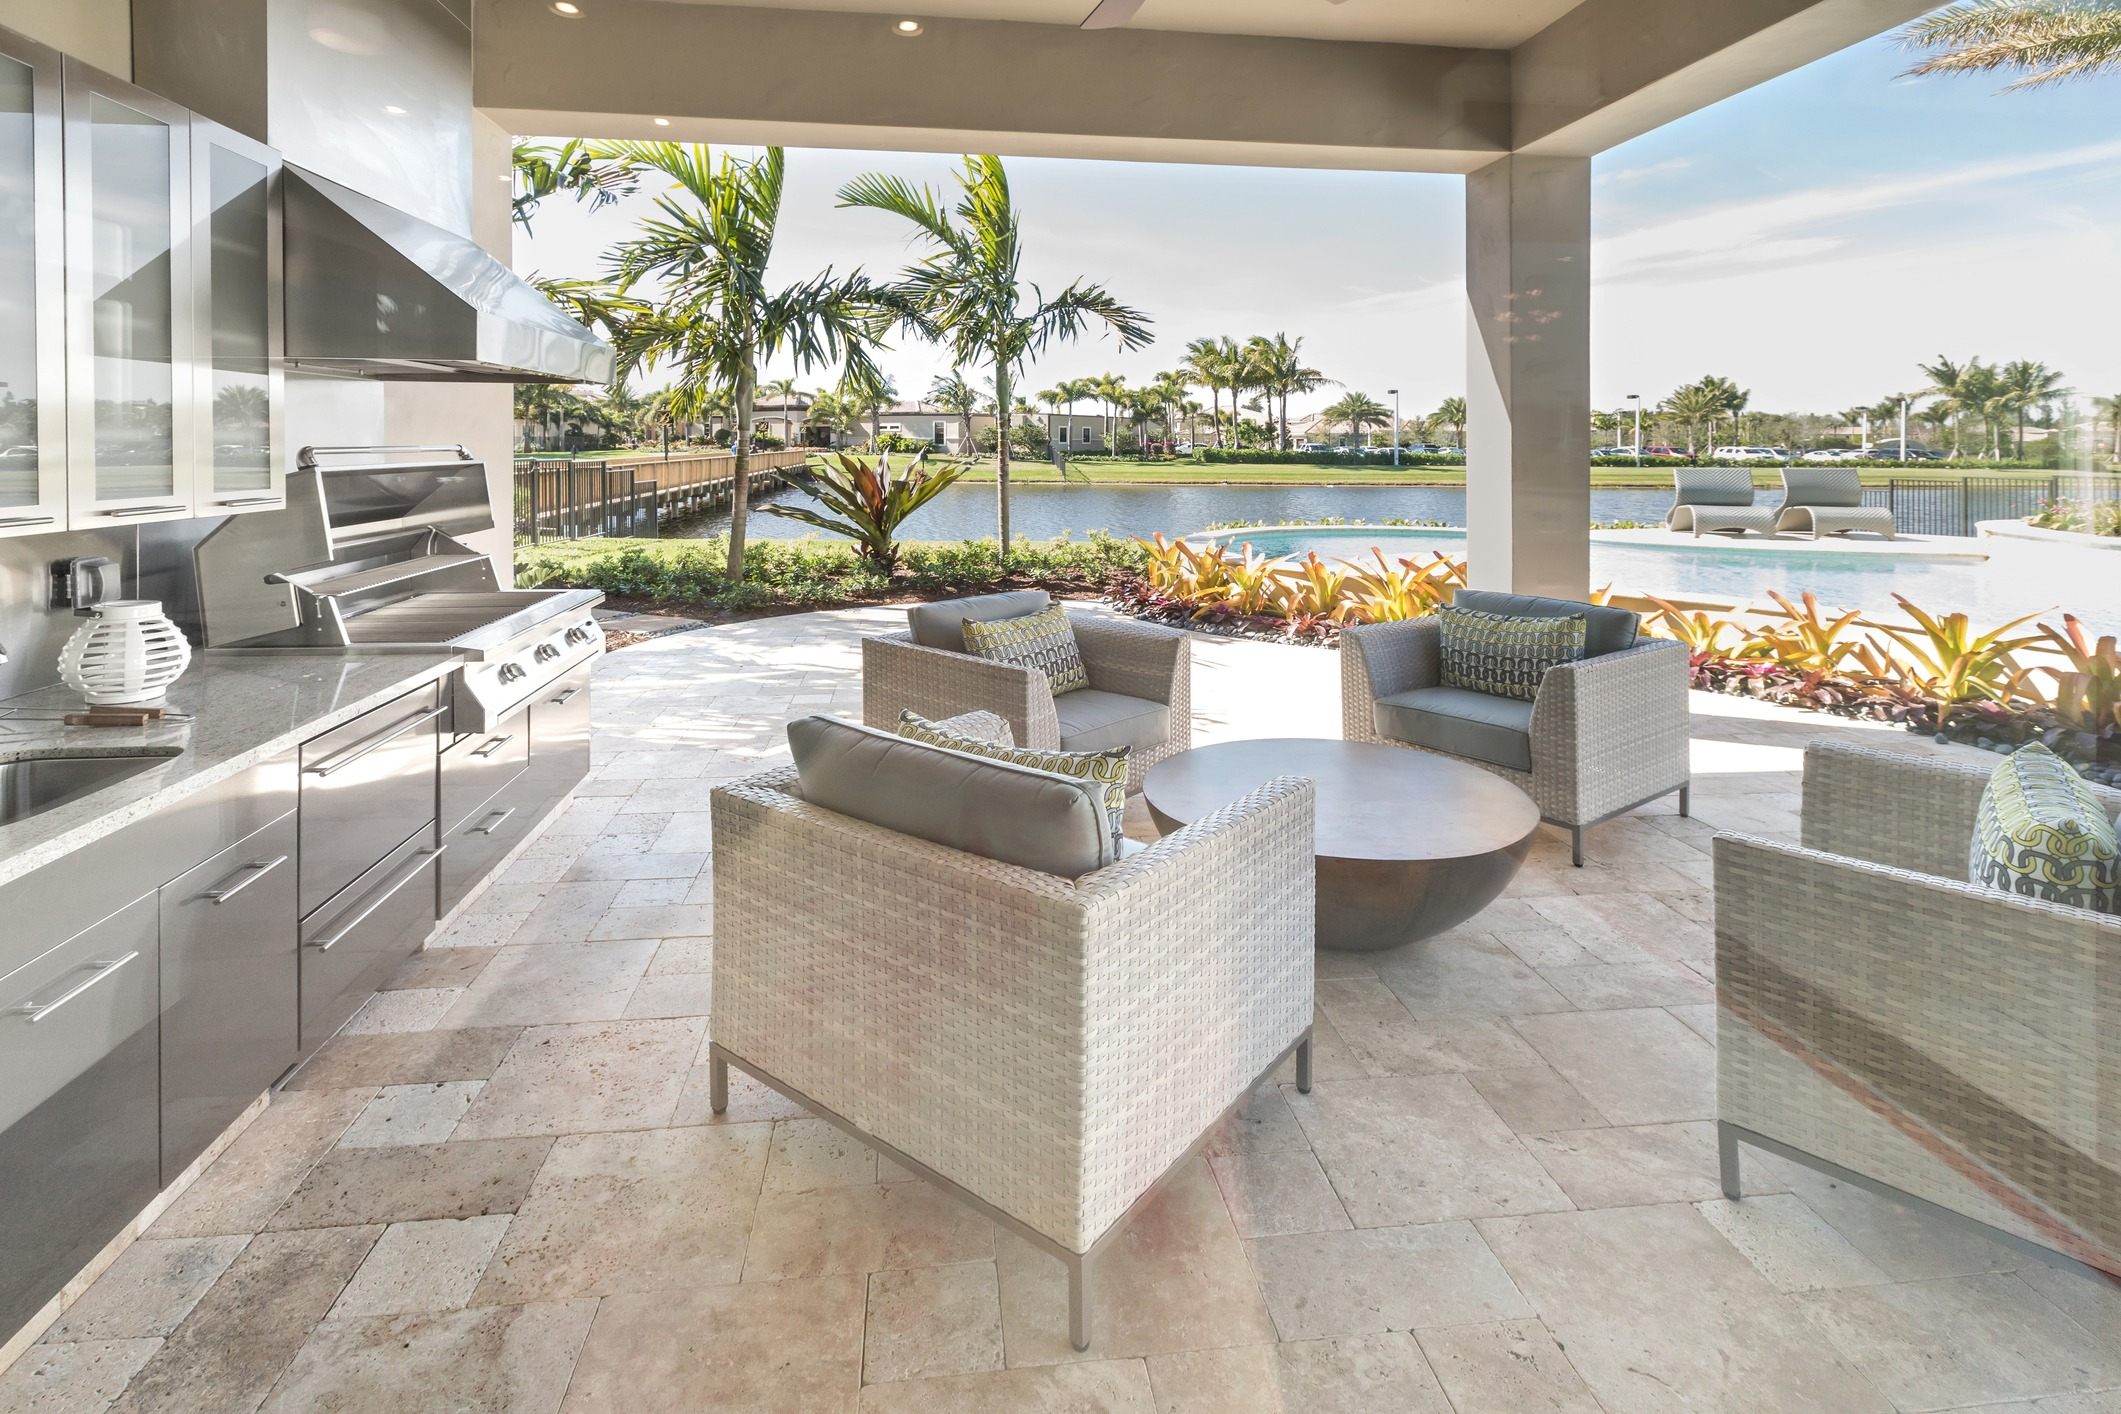 Enjoy The Summer With An Outdoor Kitchen